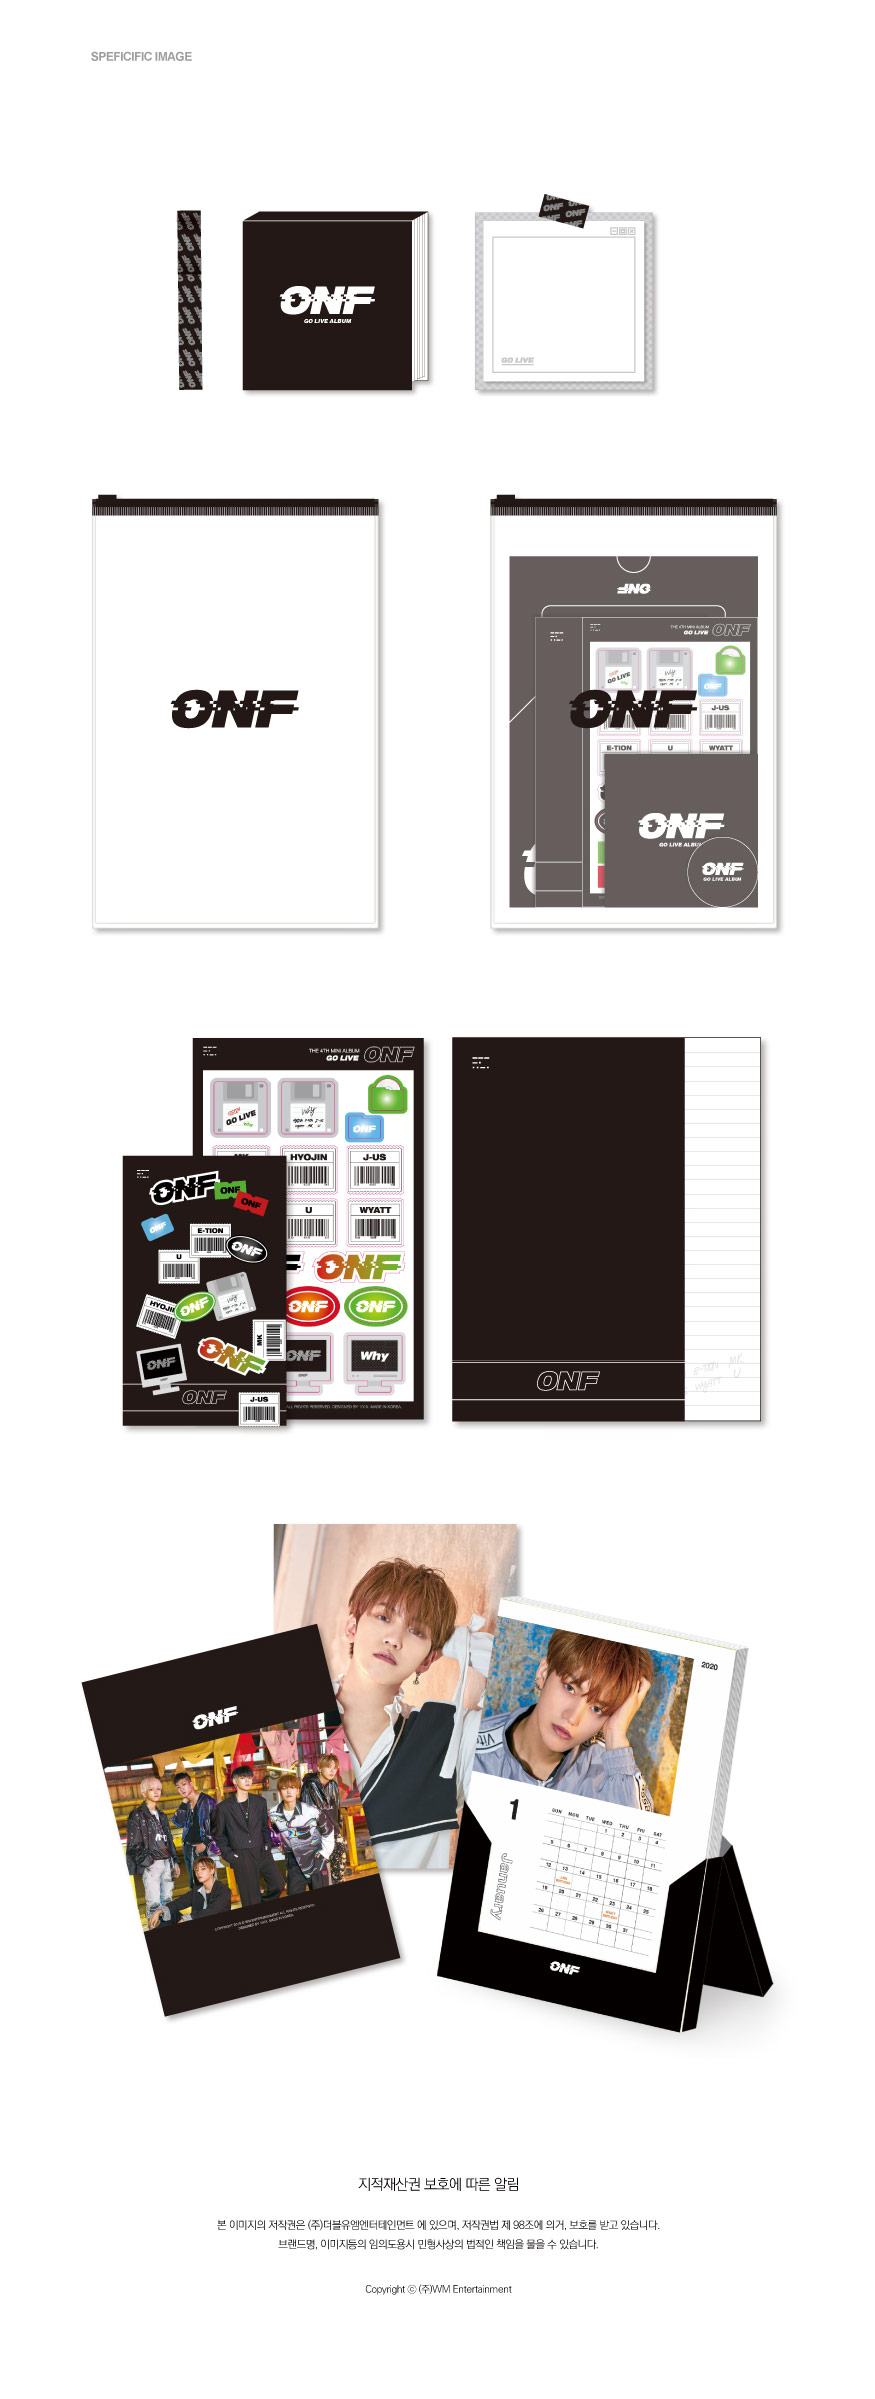 onf_go_live_stationery-2